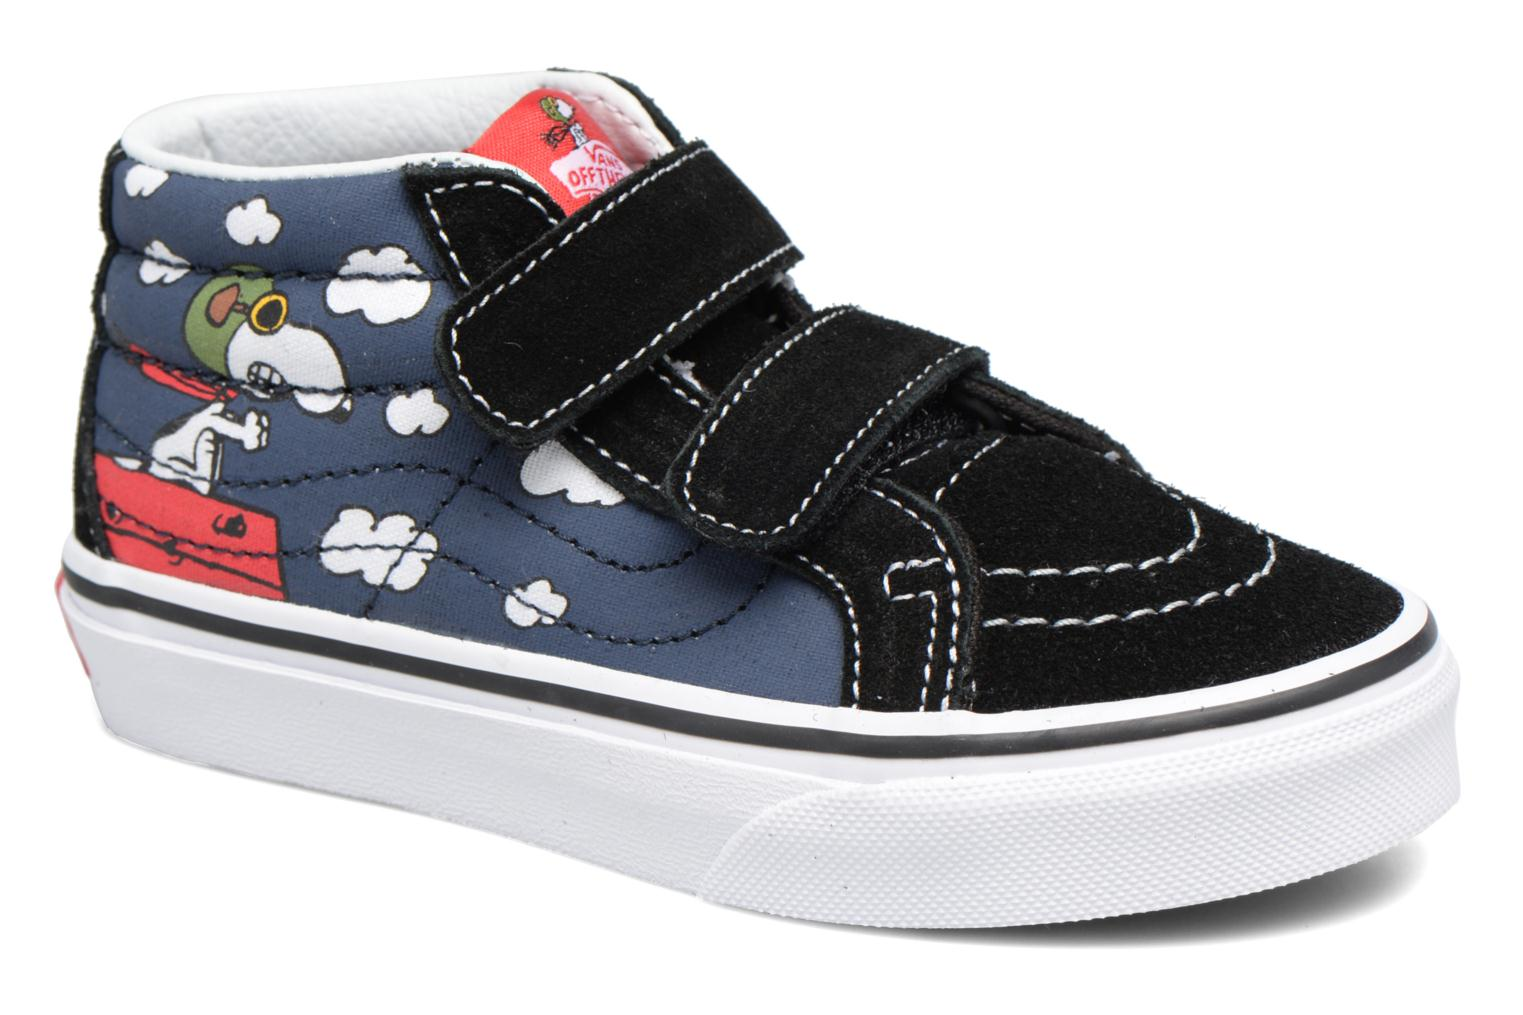 SK8-Mid Reissue V Flying Ace/Dress Blues (Peanuts)